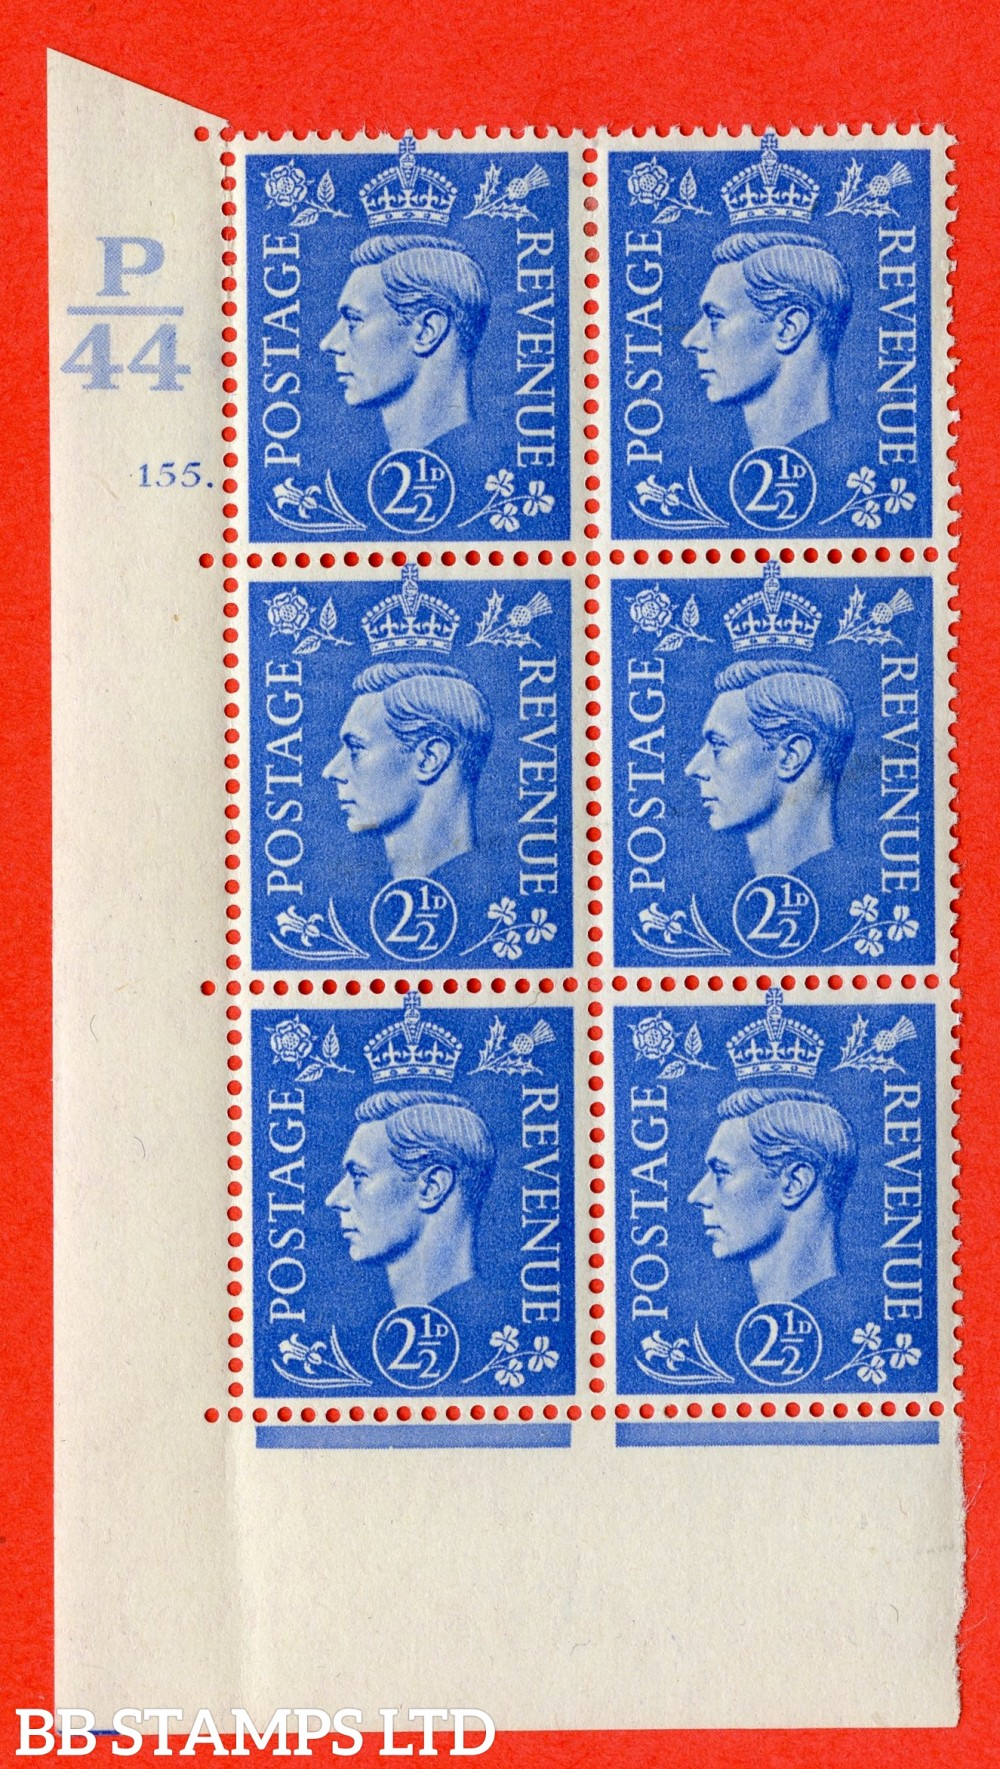 "SG. 489. Q14. 2½d Light ultramarine. A fine lightly mounted mint "" Control P44 cylinder 155 dot "" control block of 6 with perf type 5 E/I."